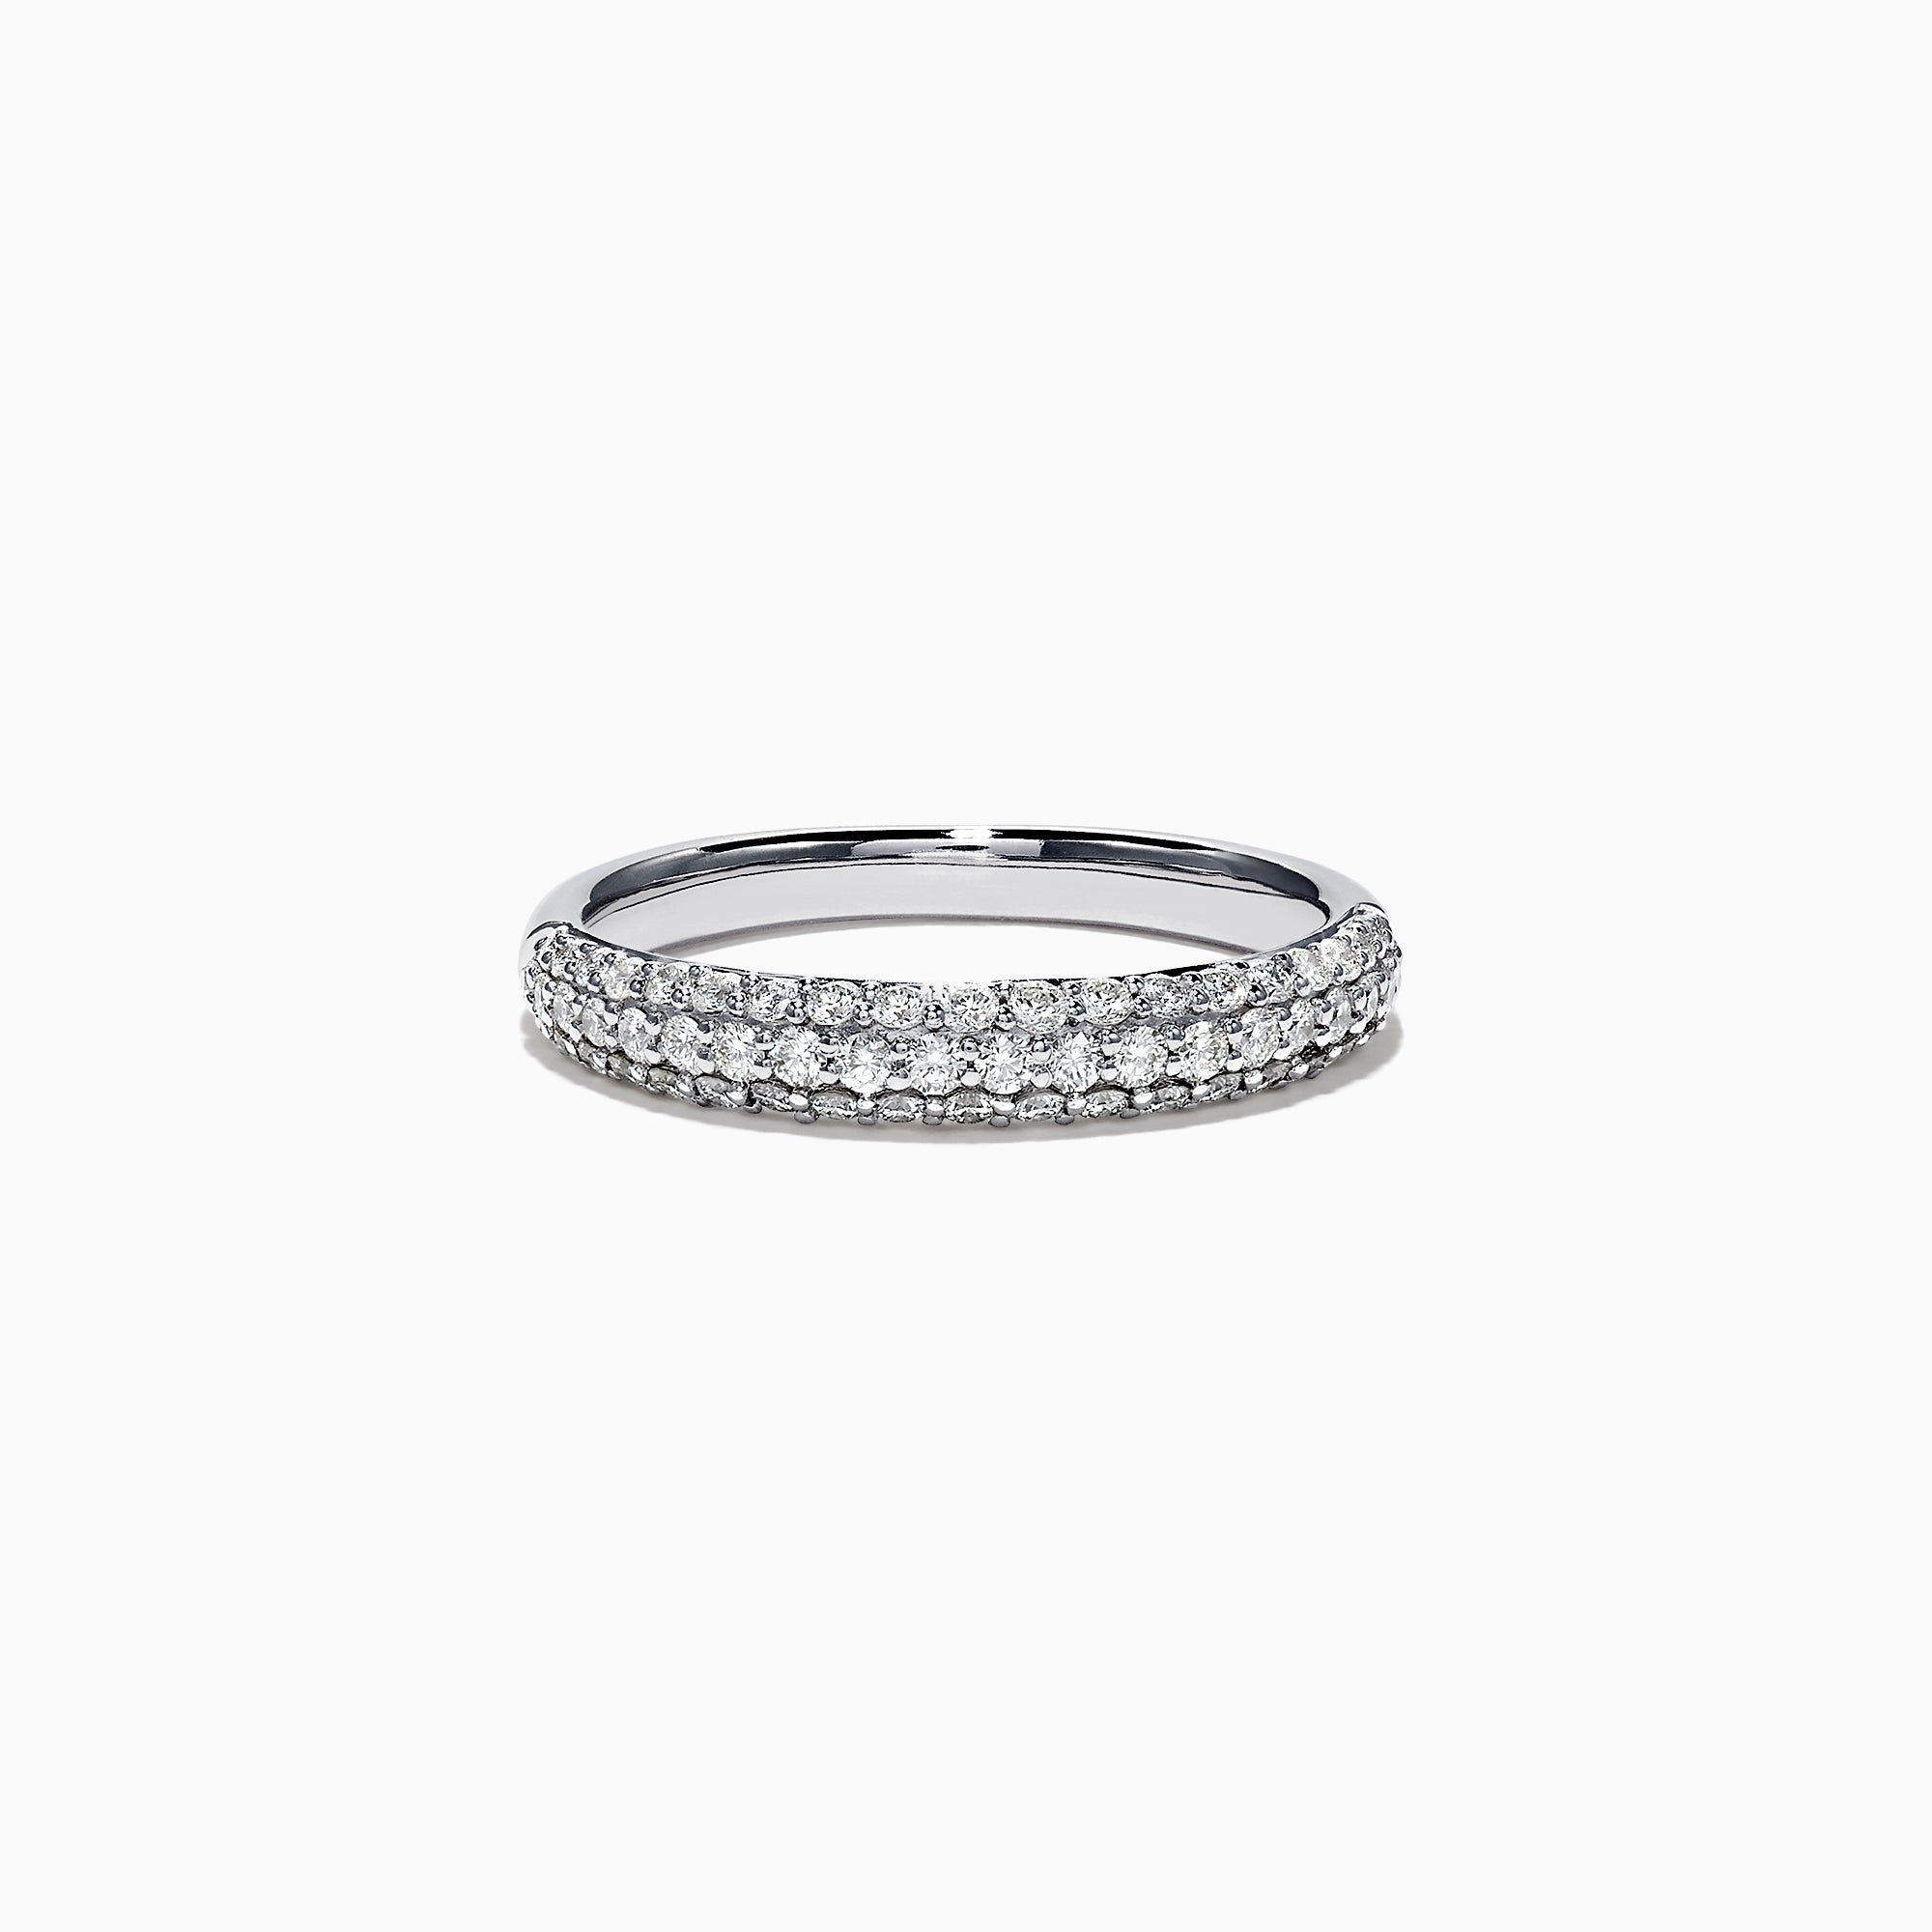 Effy Pave Classica 14K White Gold Diamond Ring, 0.54 TCW